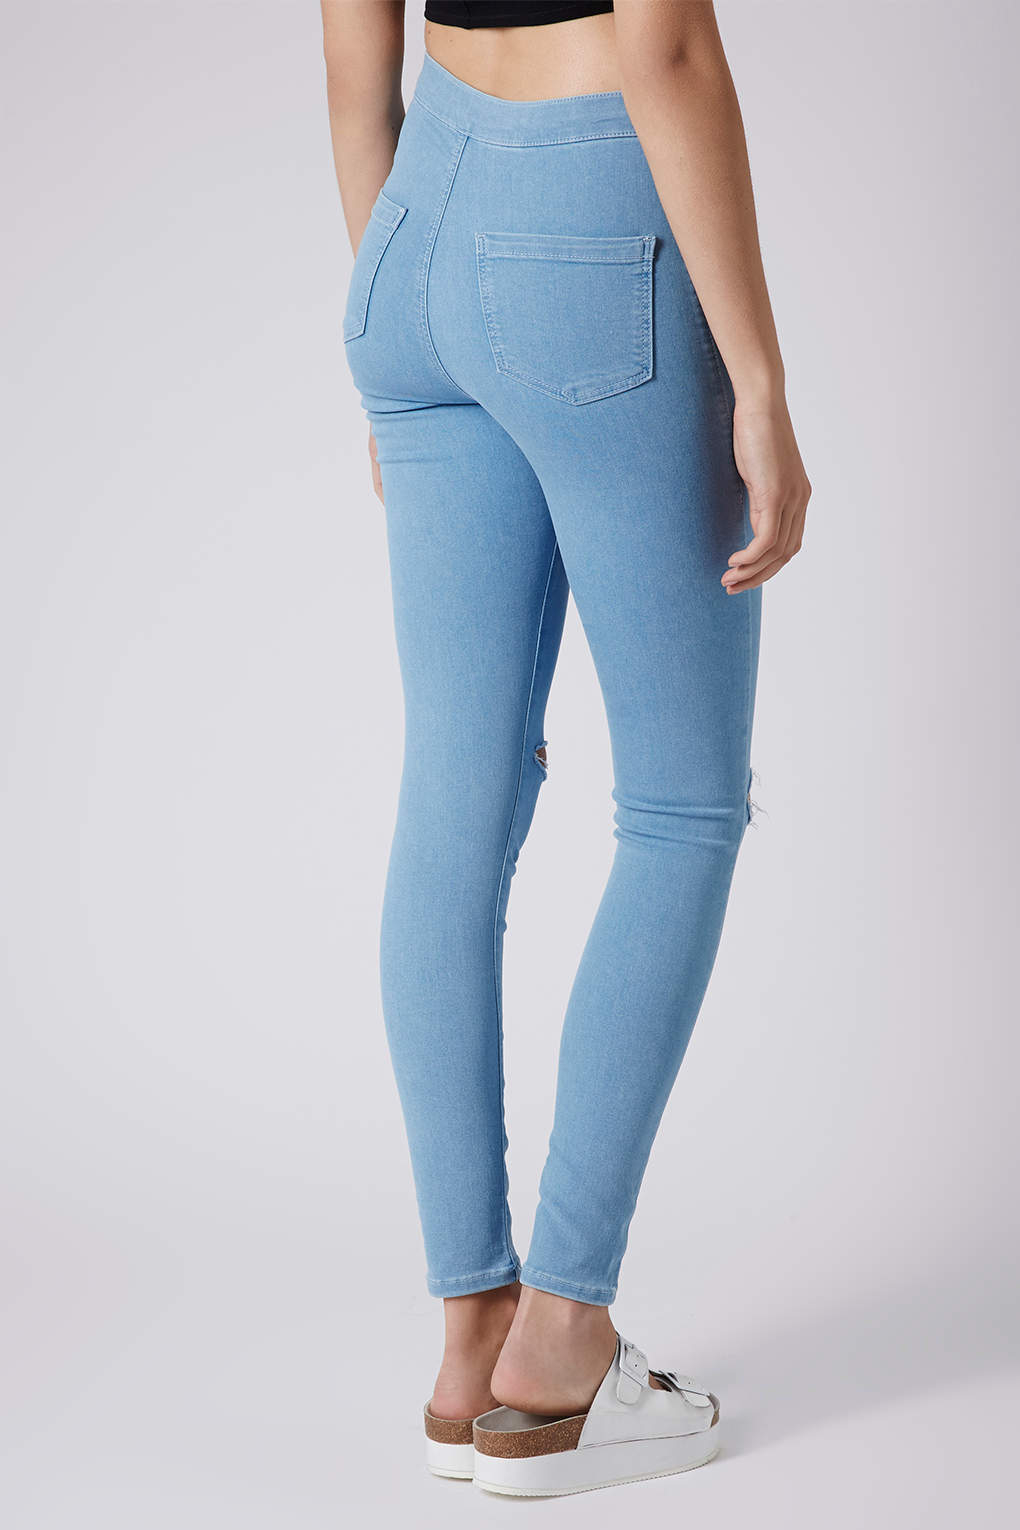 4d54fd608ae TOPSHOP Moto Bleached Ripped Joni Jeans in Blue - Lyst